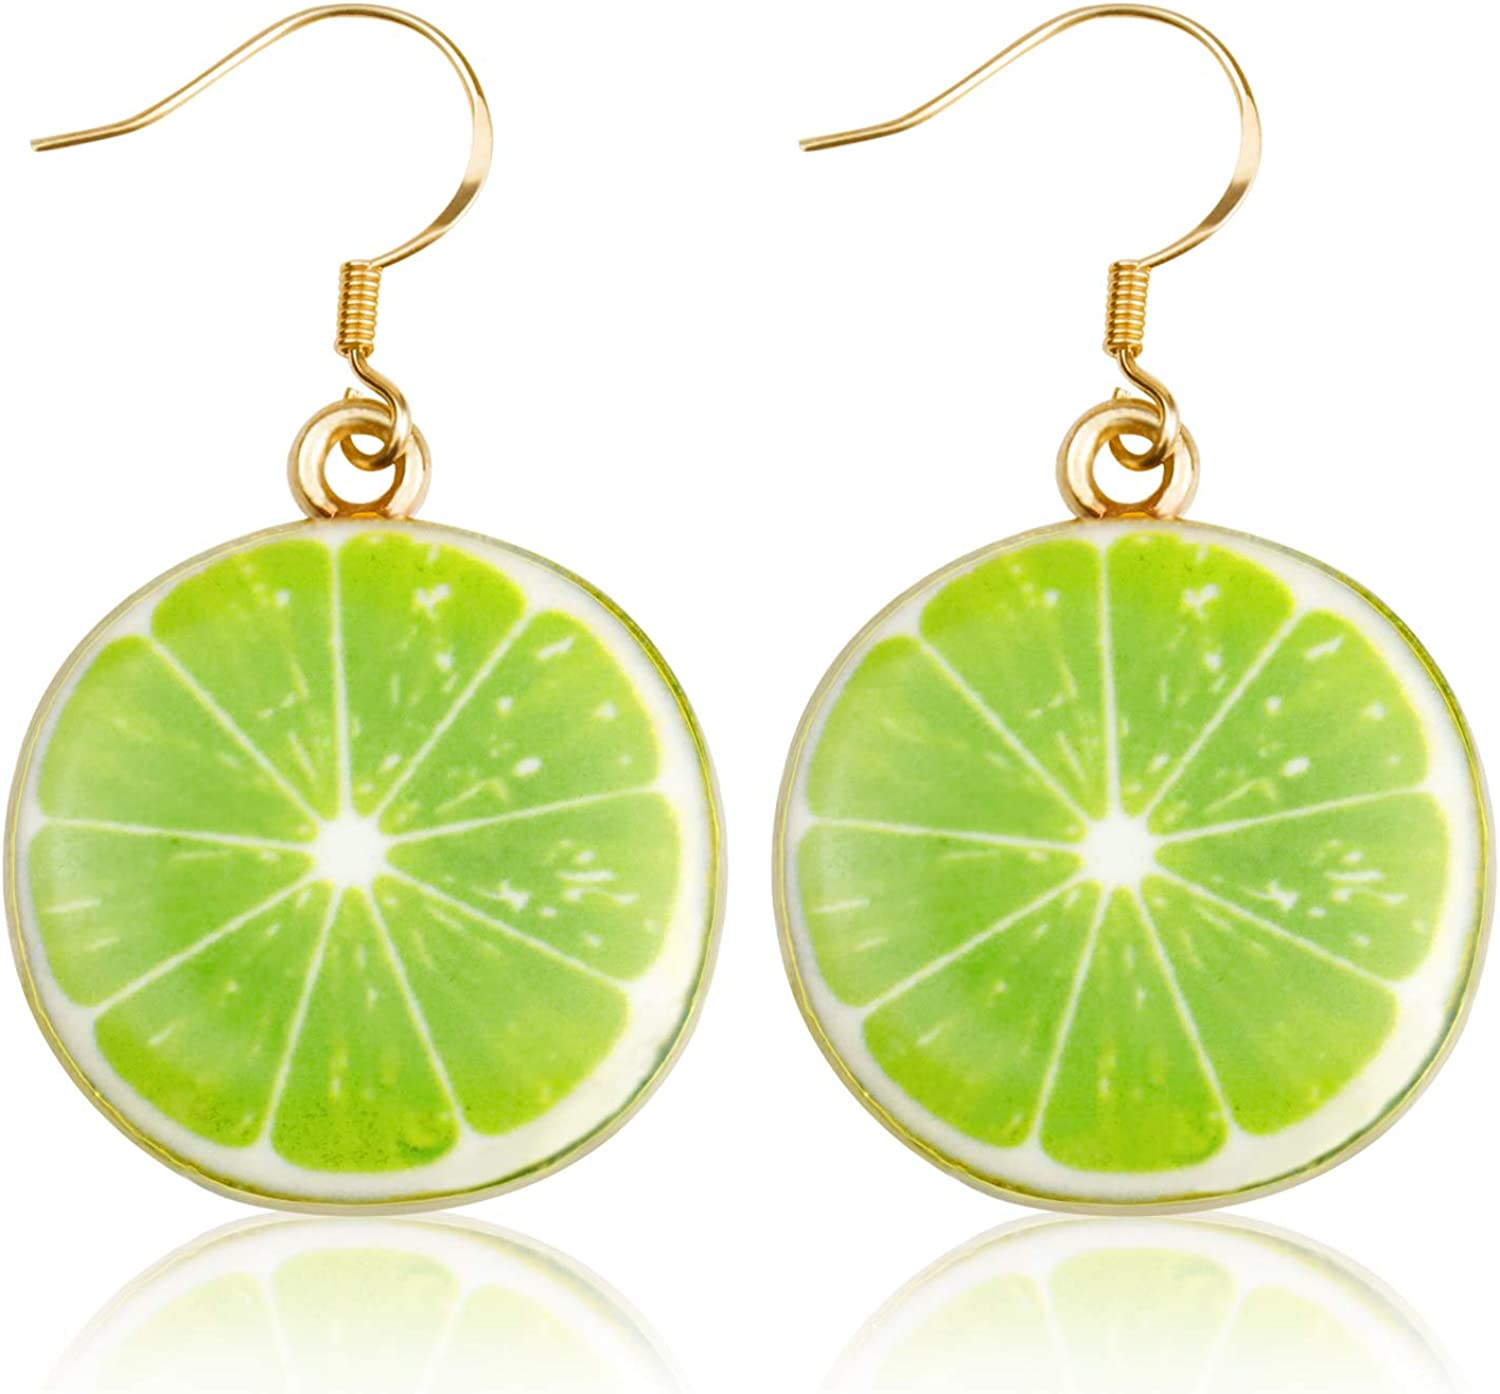 JIGAL Lemon Earrings Kiwi Strawberry Watermelon Grapefruit Cute Fruit Theme Dangle Earrings Jewelry for Women Girls